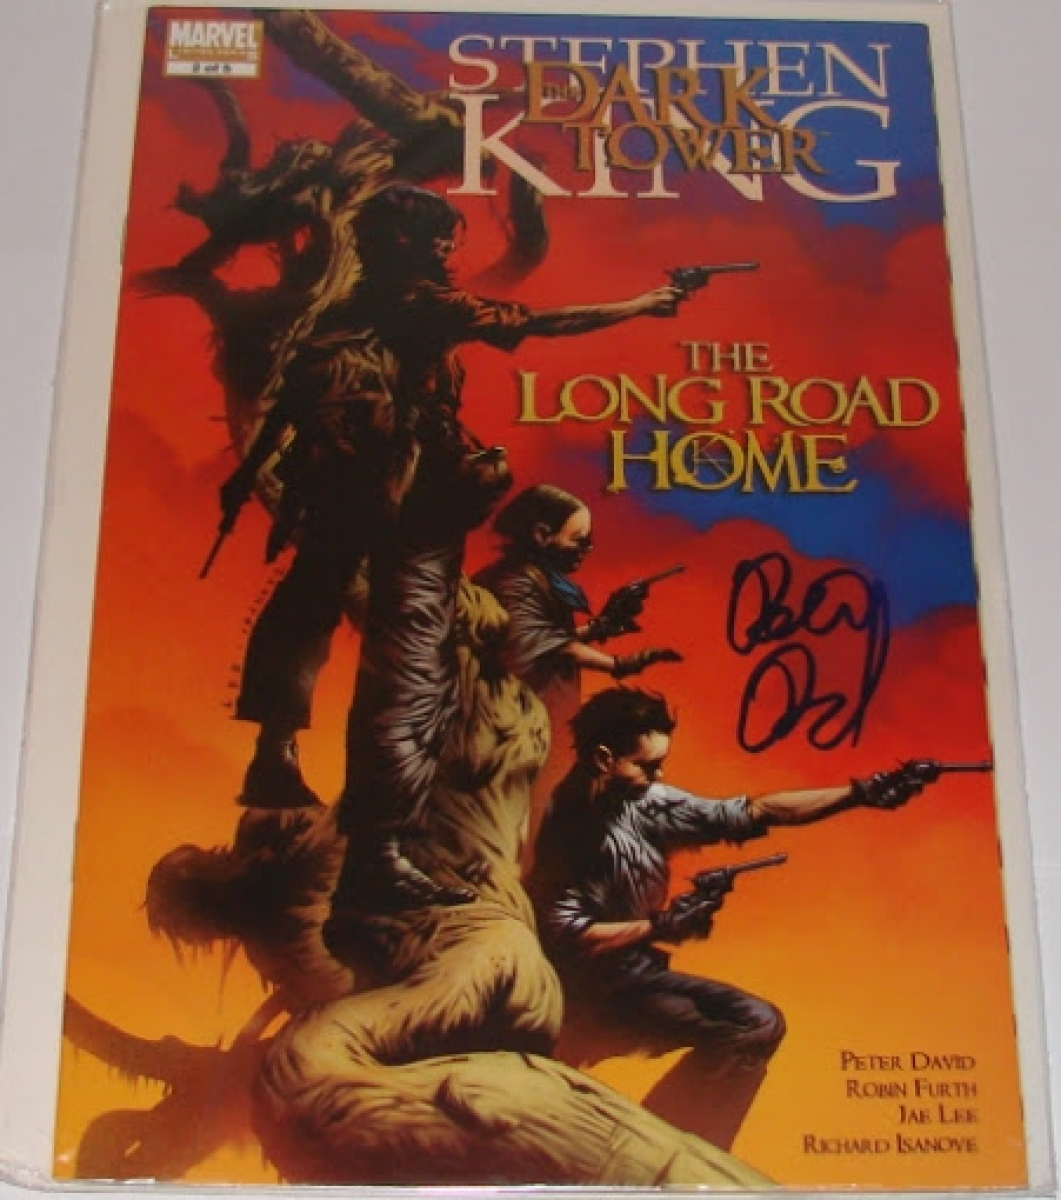 """The Dark Tower: The Long Road Home #2"" - autograf Petera Davida - obrazek"